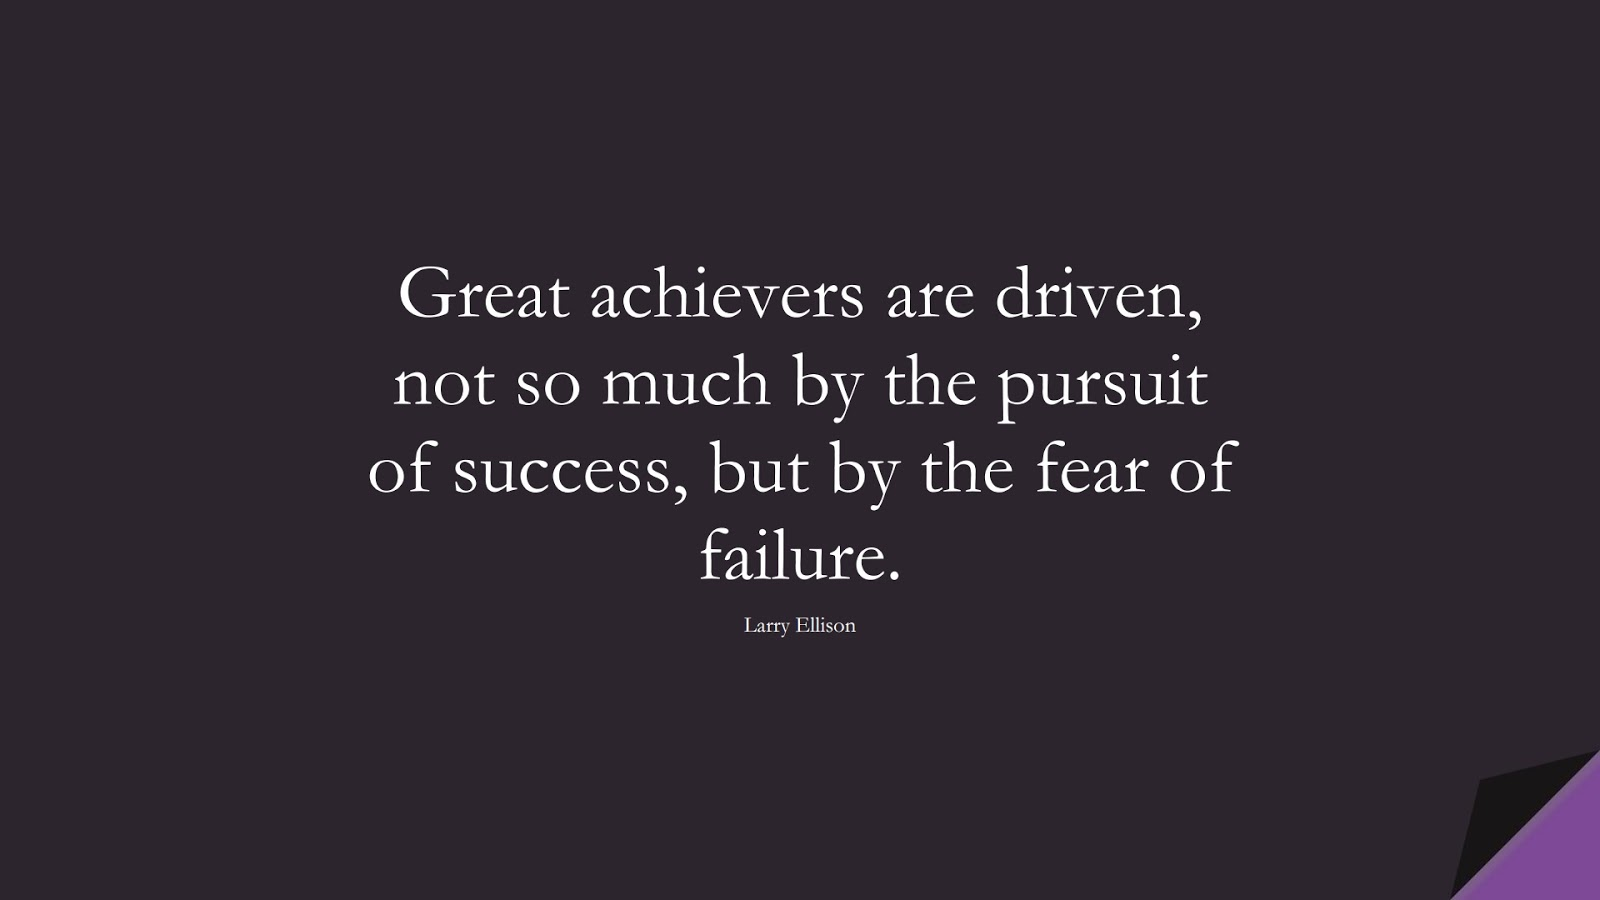 Great achievers are driven, not so much by the pursuit of success, but by the fear of failure. (Larry Ellison);  #SuccessQuotes